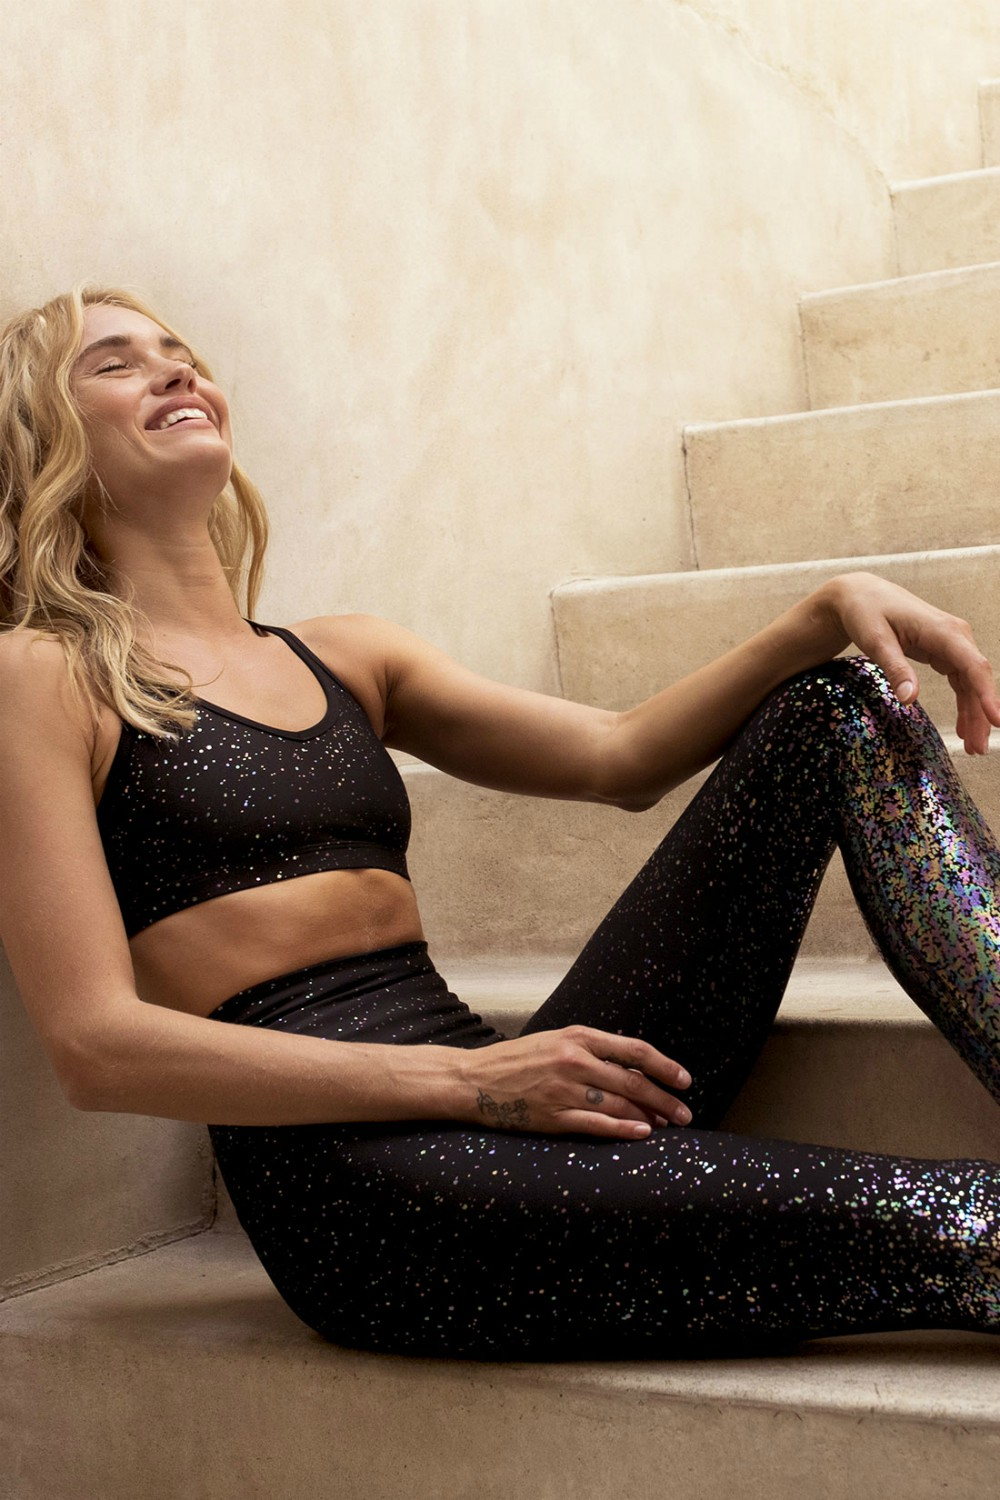 According to Lyst, shoppers are doubling down on their fitness resolutions in 2020 with increased active wear purchases.